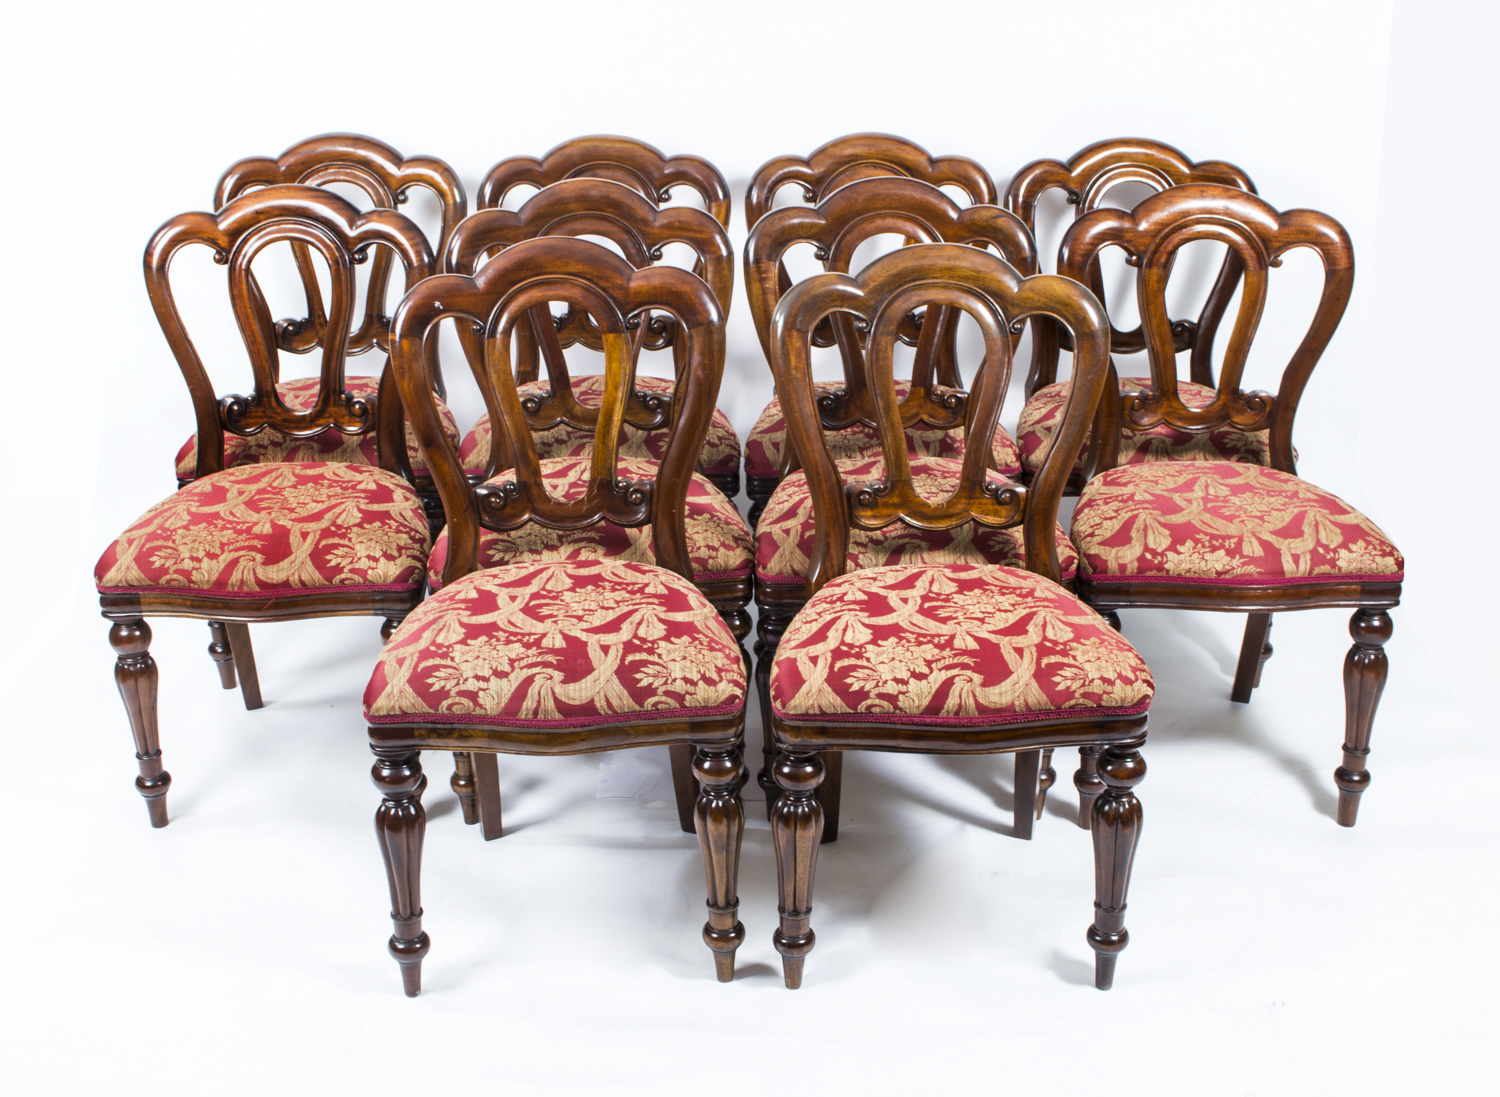 Victorian style furniture chair - Victorian Style Furniture Chair 39